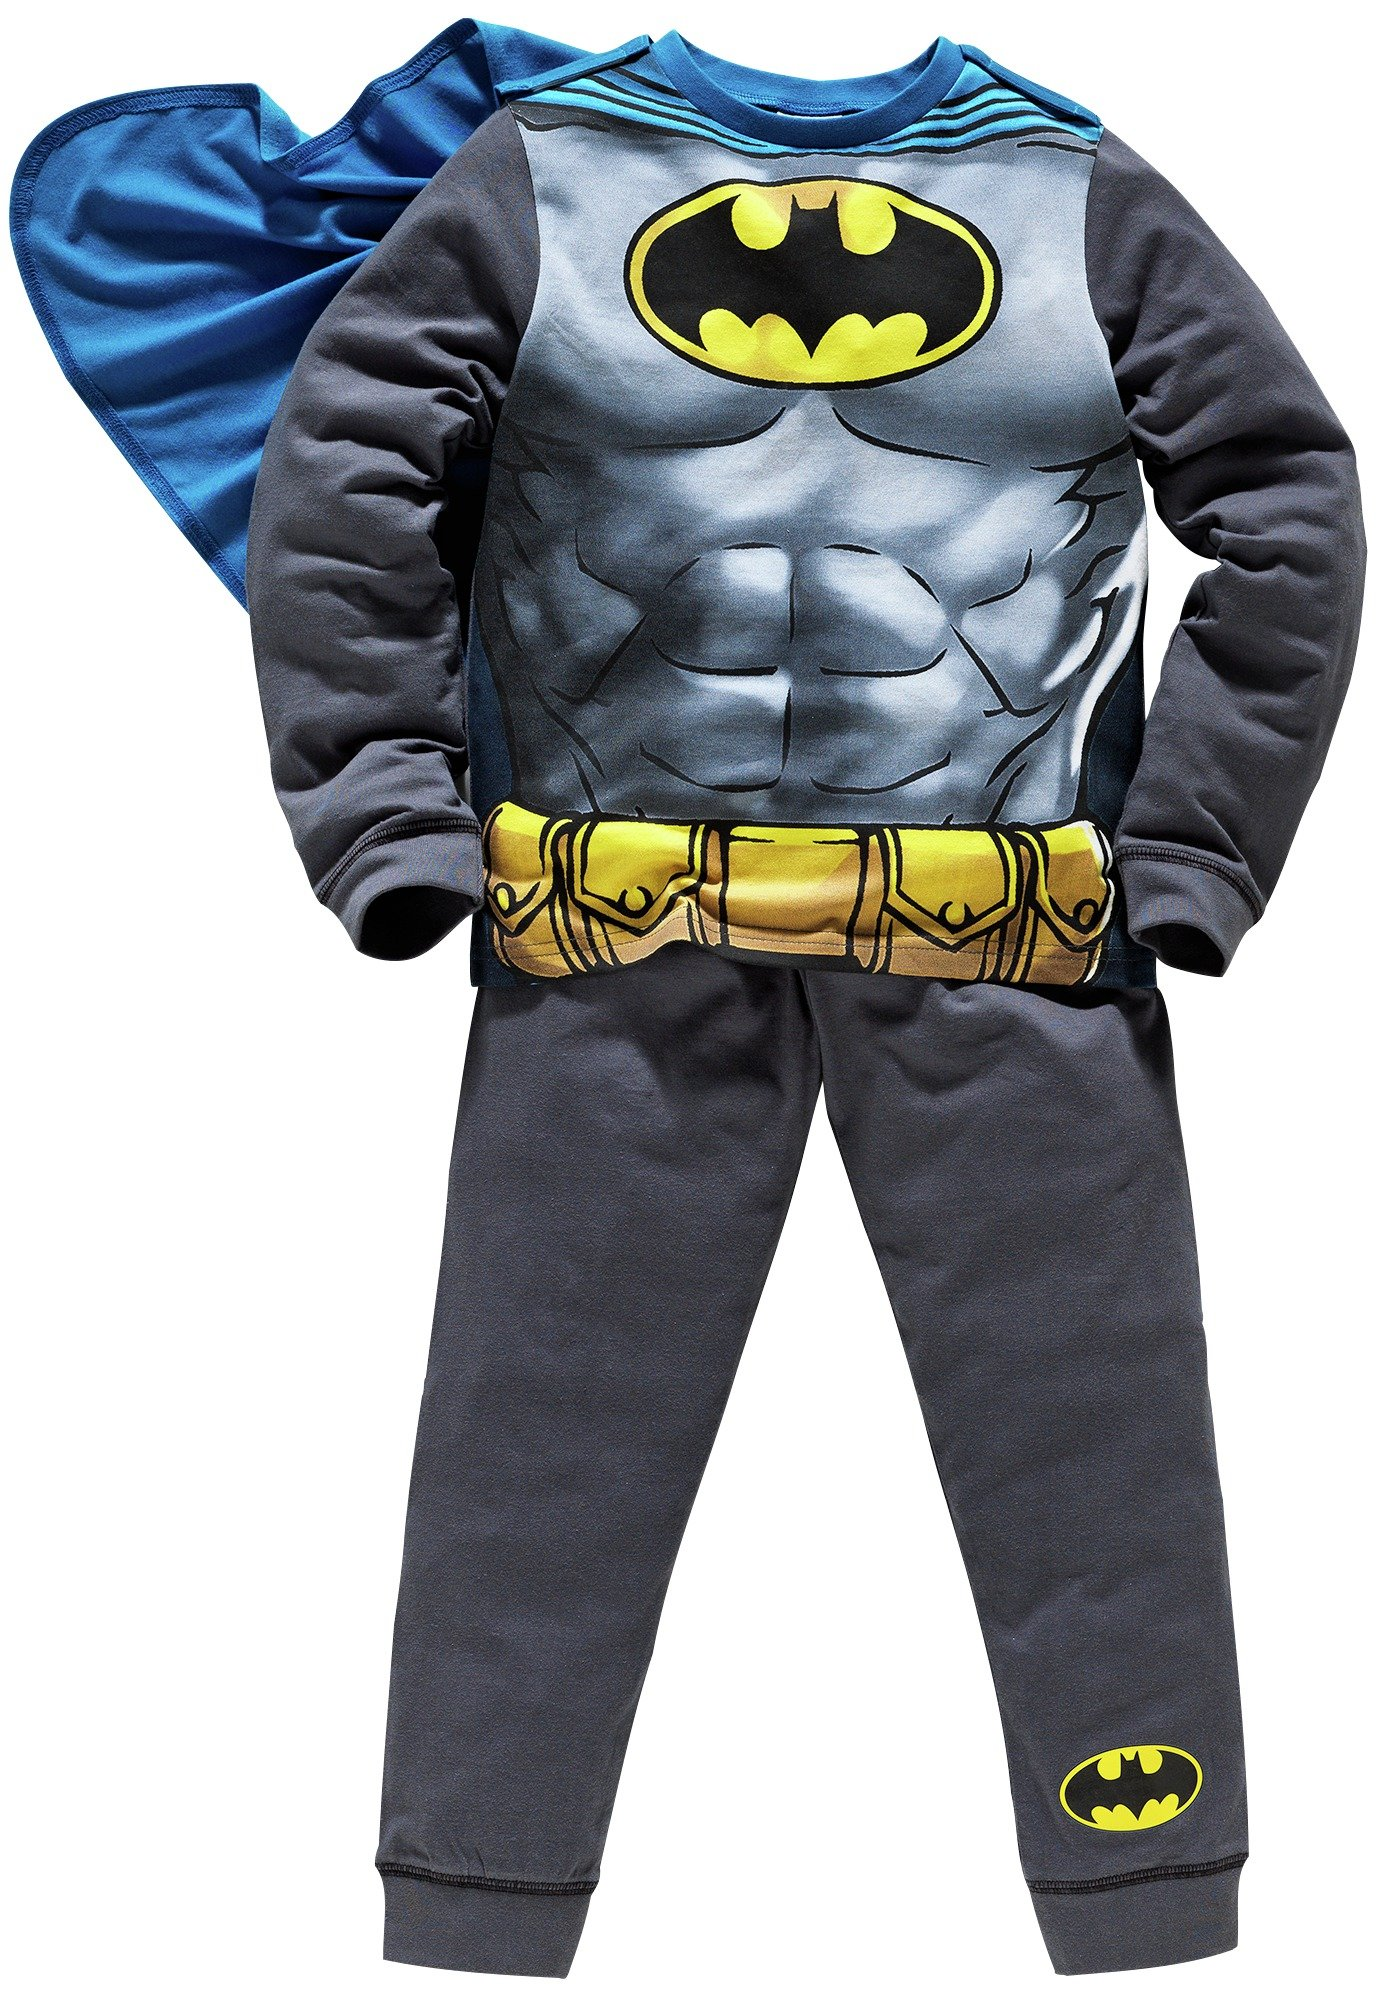 Image of Batman Novelty Pyjamas with Cape - 2-3 Years